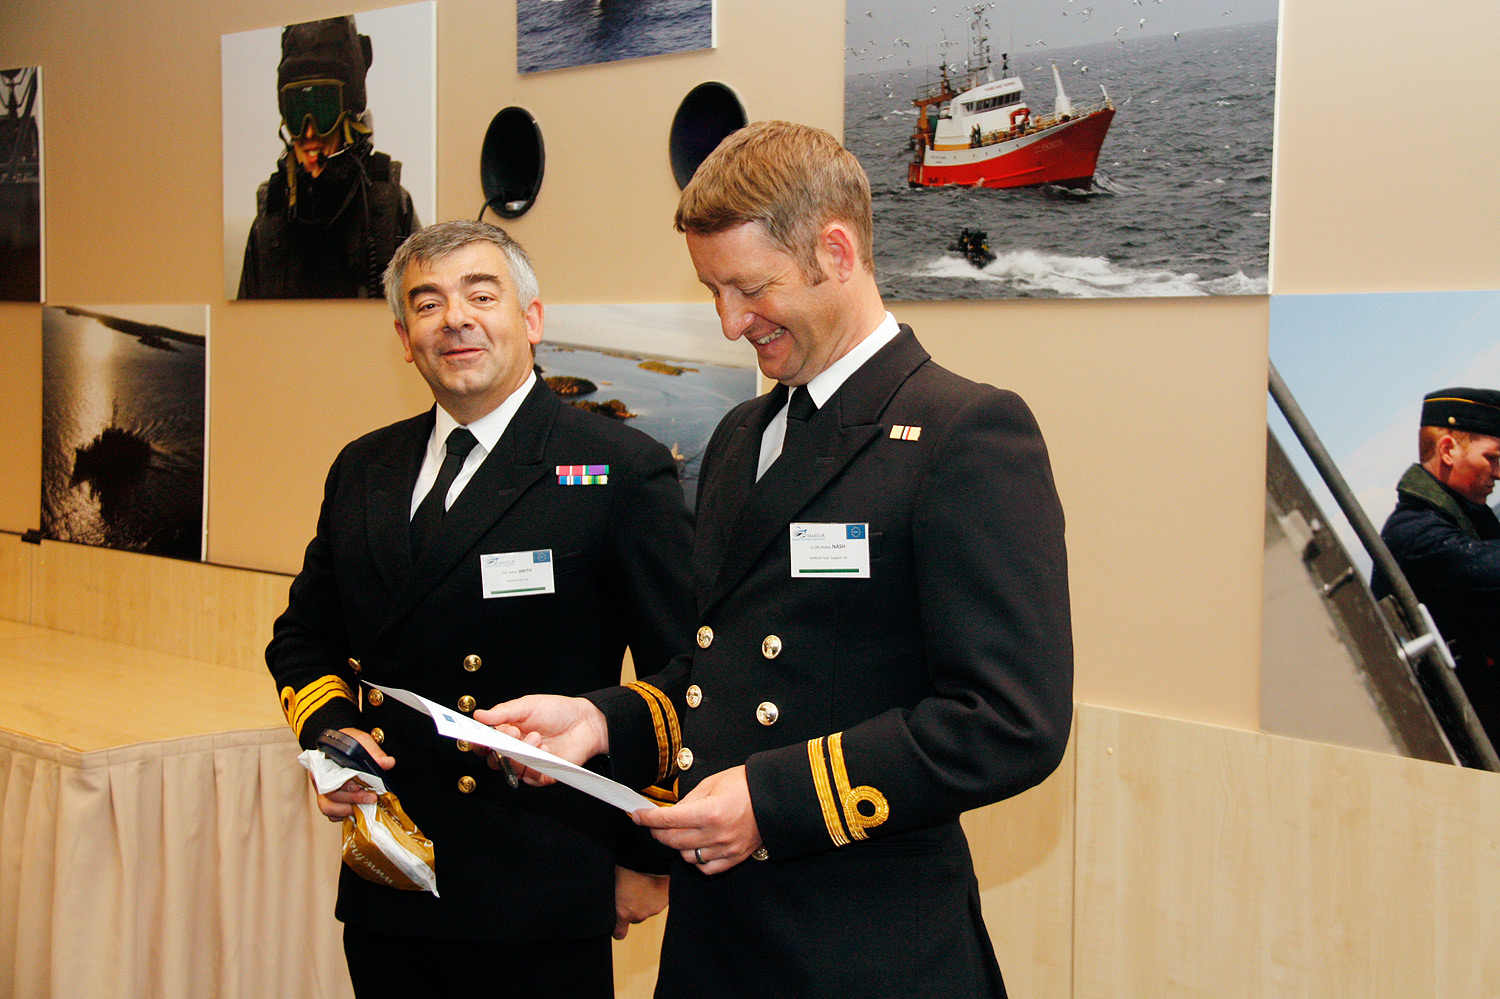 Commander of Her Majesties Royal Navy, Steve Smith and Lieutenant Robin Nash